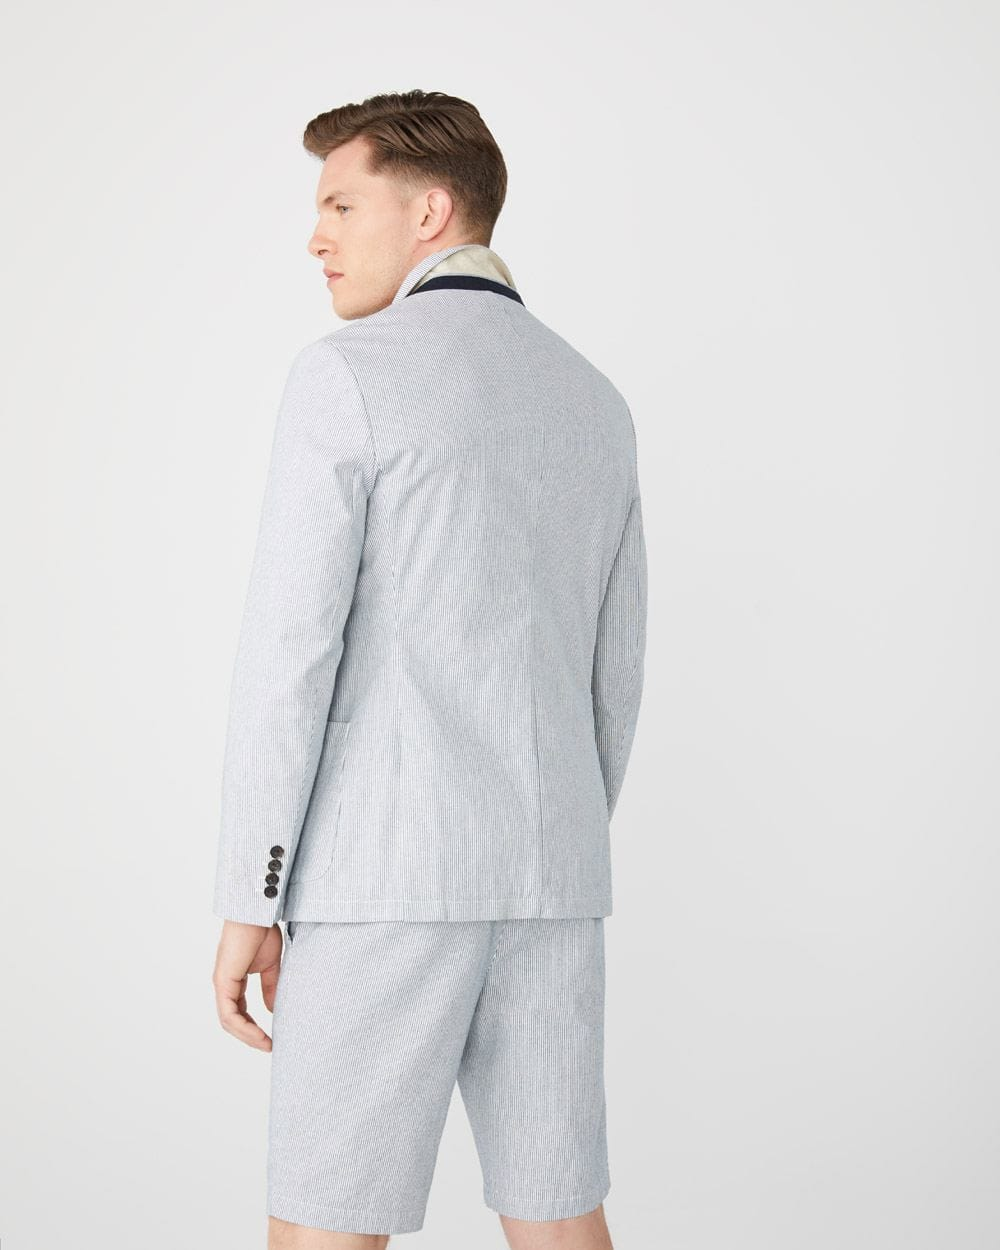 Slim fit blue pinstripe blazer